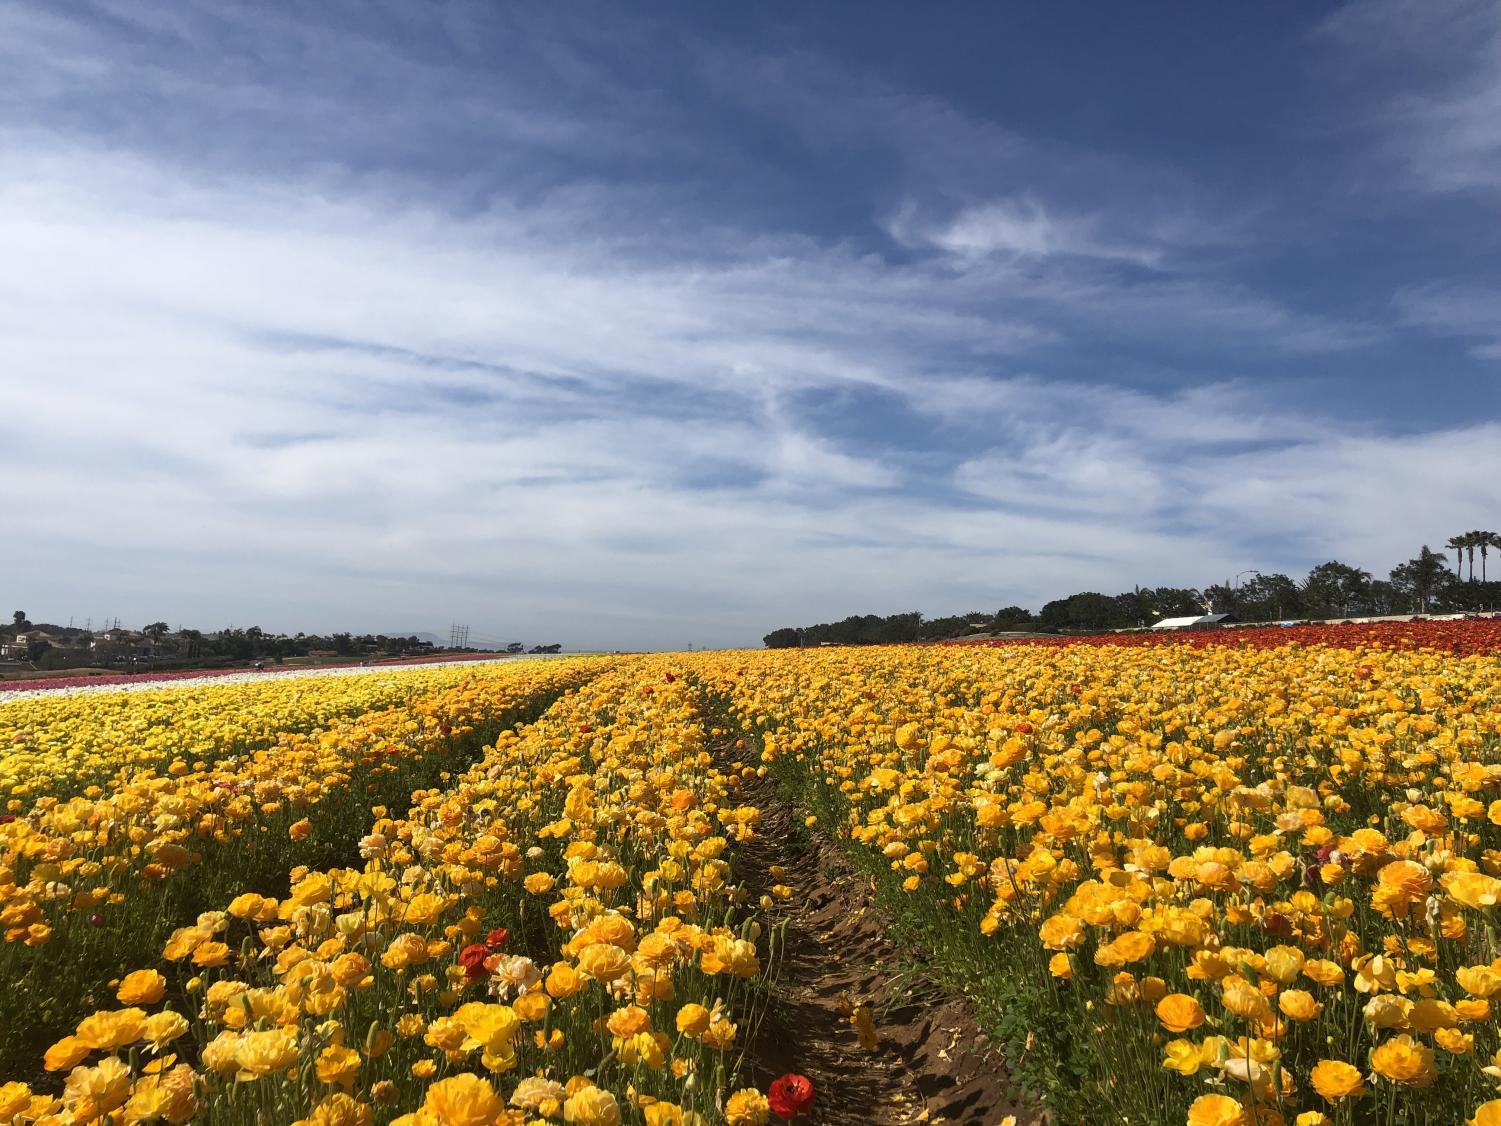 Millions of multi-colored flowers spread for over a mile at The Flower Fields in Carlsbad, CA.